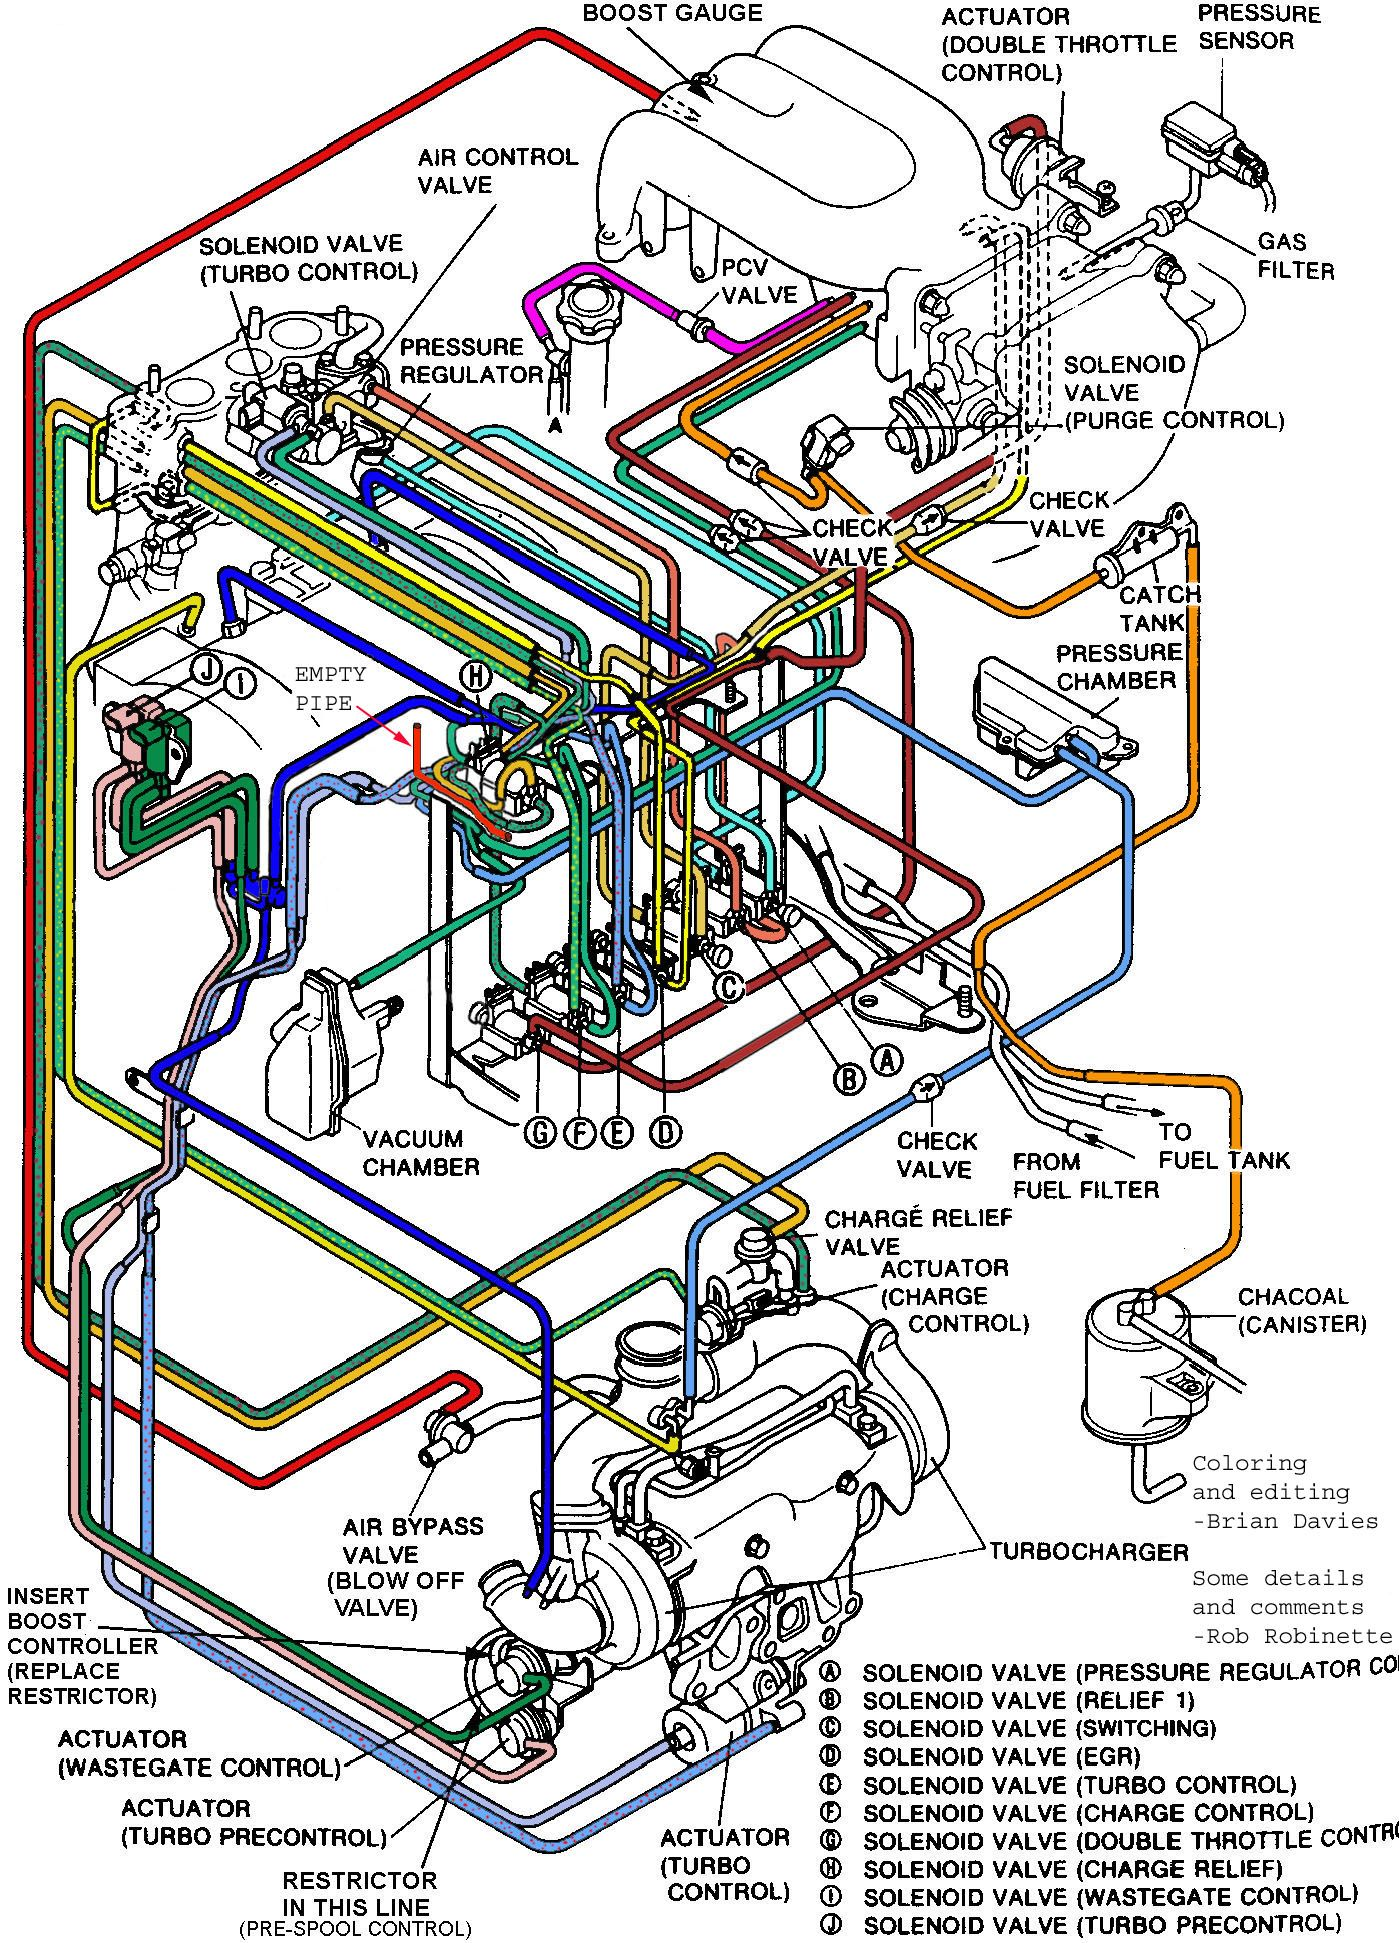 wiring diagram for 3 way switch with 2 lights - http://www, Wiring diagram